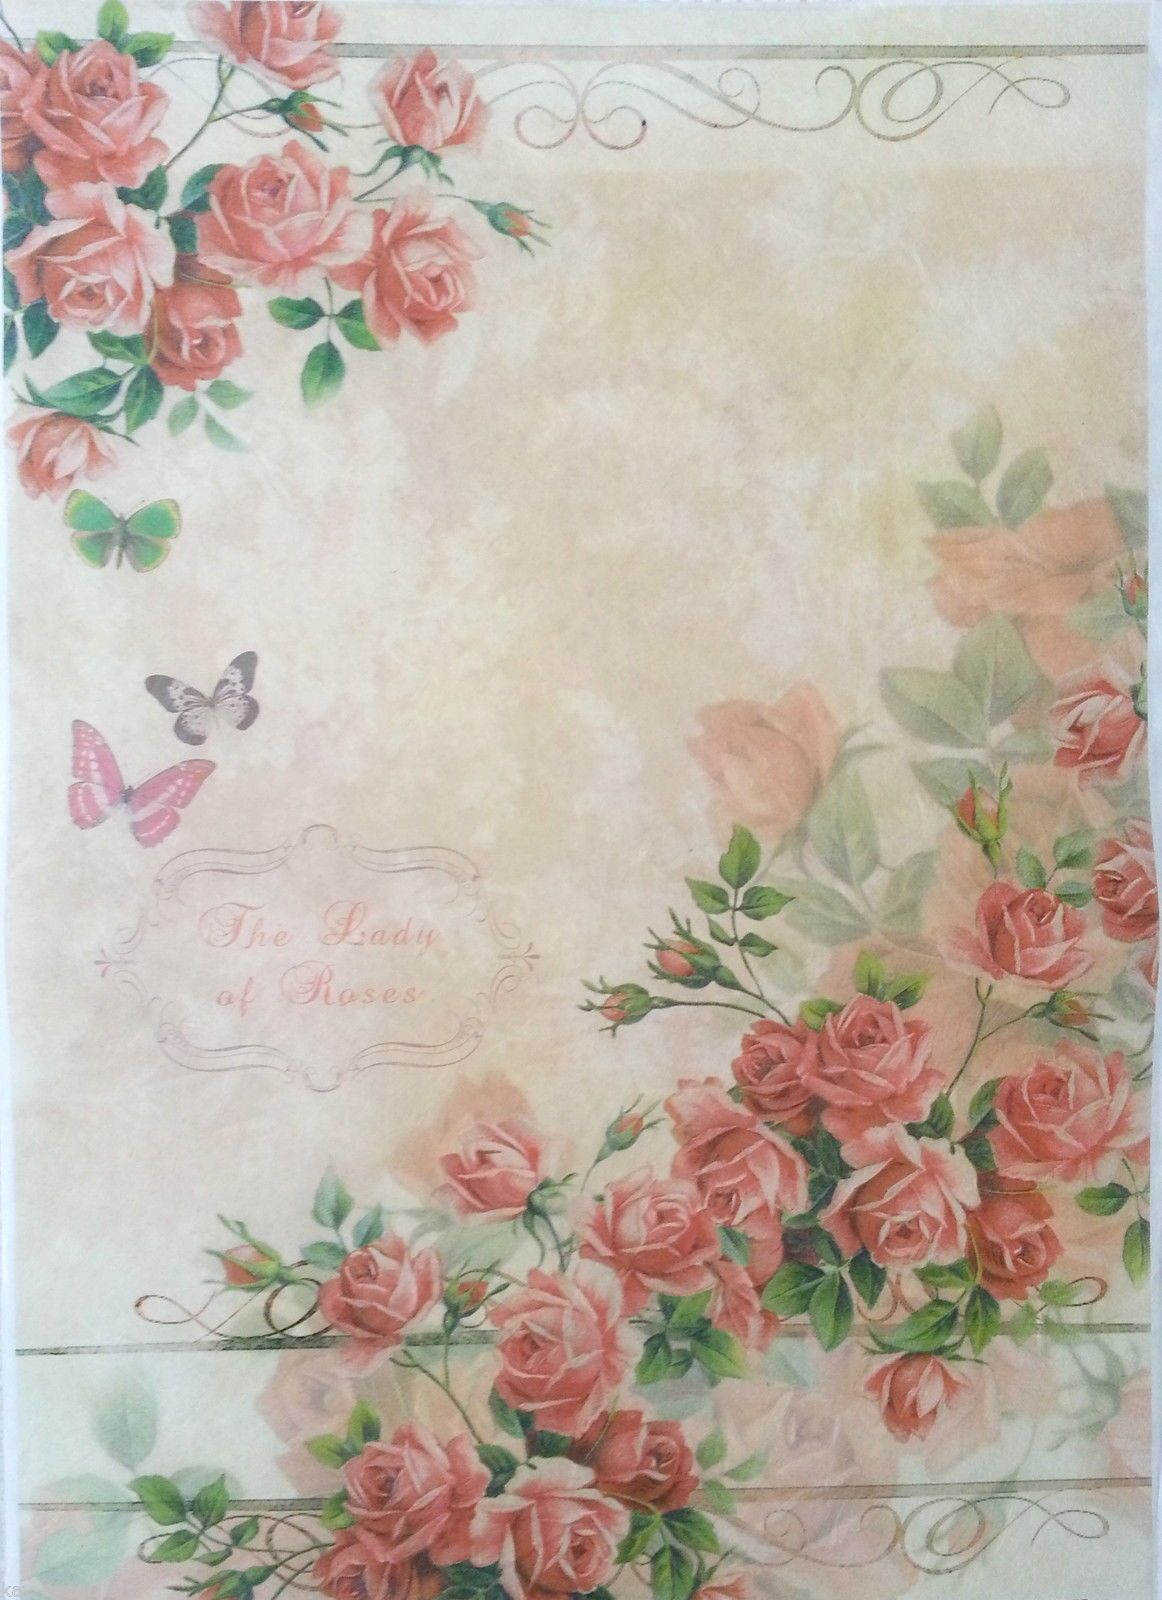 Rice Decoupage Paper  Decopatch  Decoupage Sheets Scrapbooking, Light Roses 7110625292674   eBay is part of Decoupage paper - Set of 4 single napkins 3Ply Quality Paper Napkins